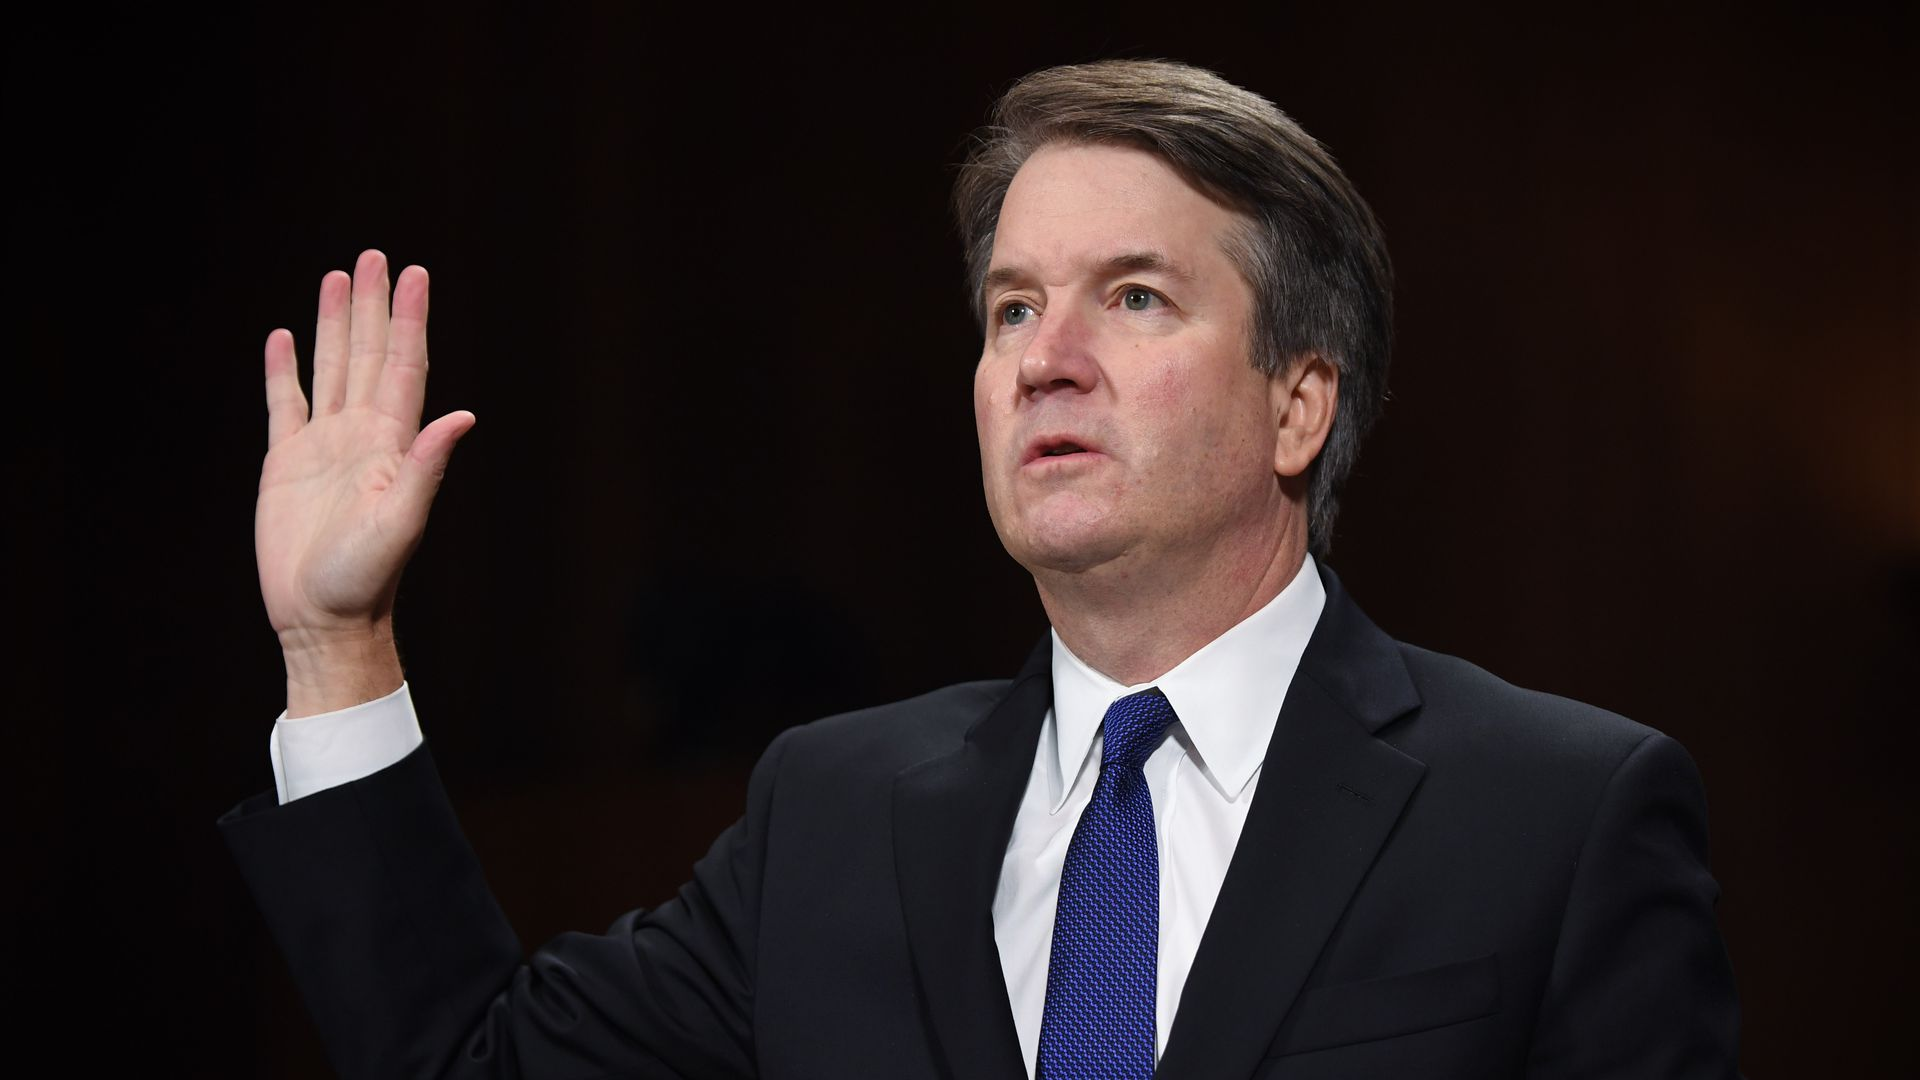 Media Can Savagely Scandalize Kavanaugh